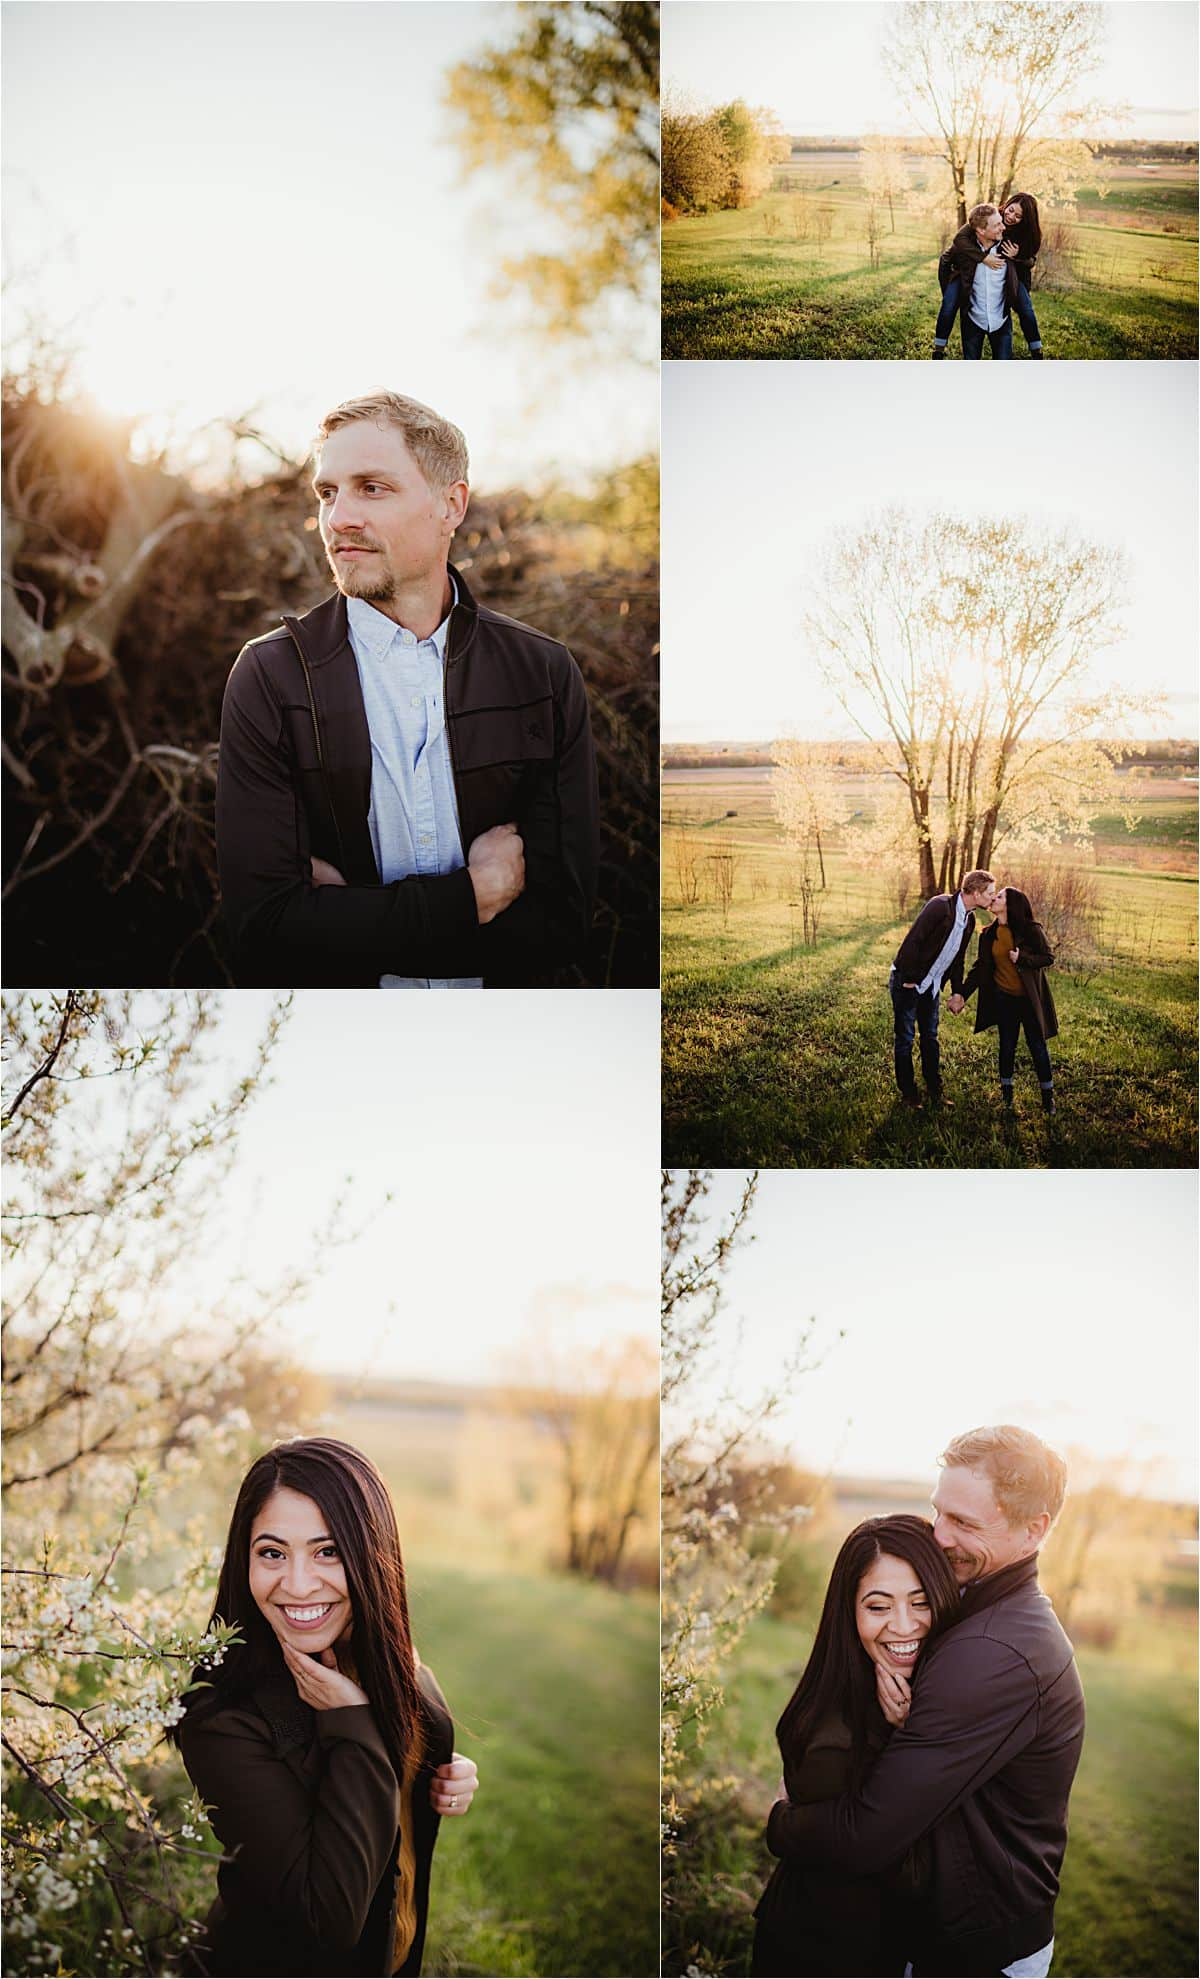 Romantic Sunset Engagement Session Couple at Sunset in Field